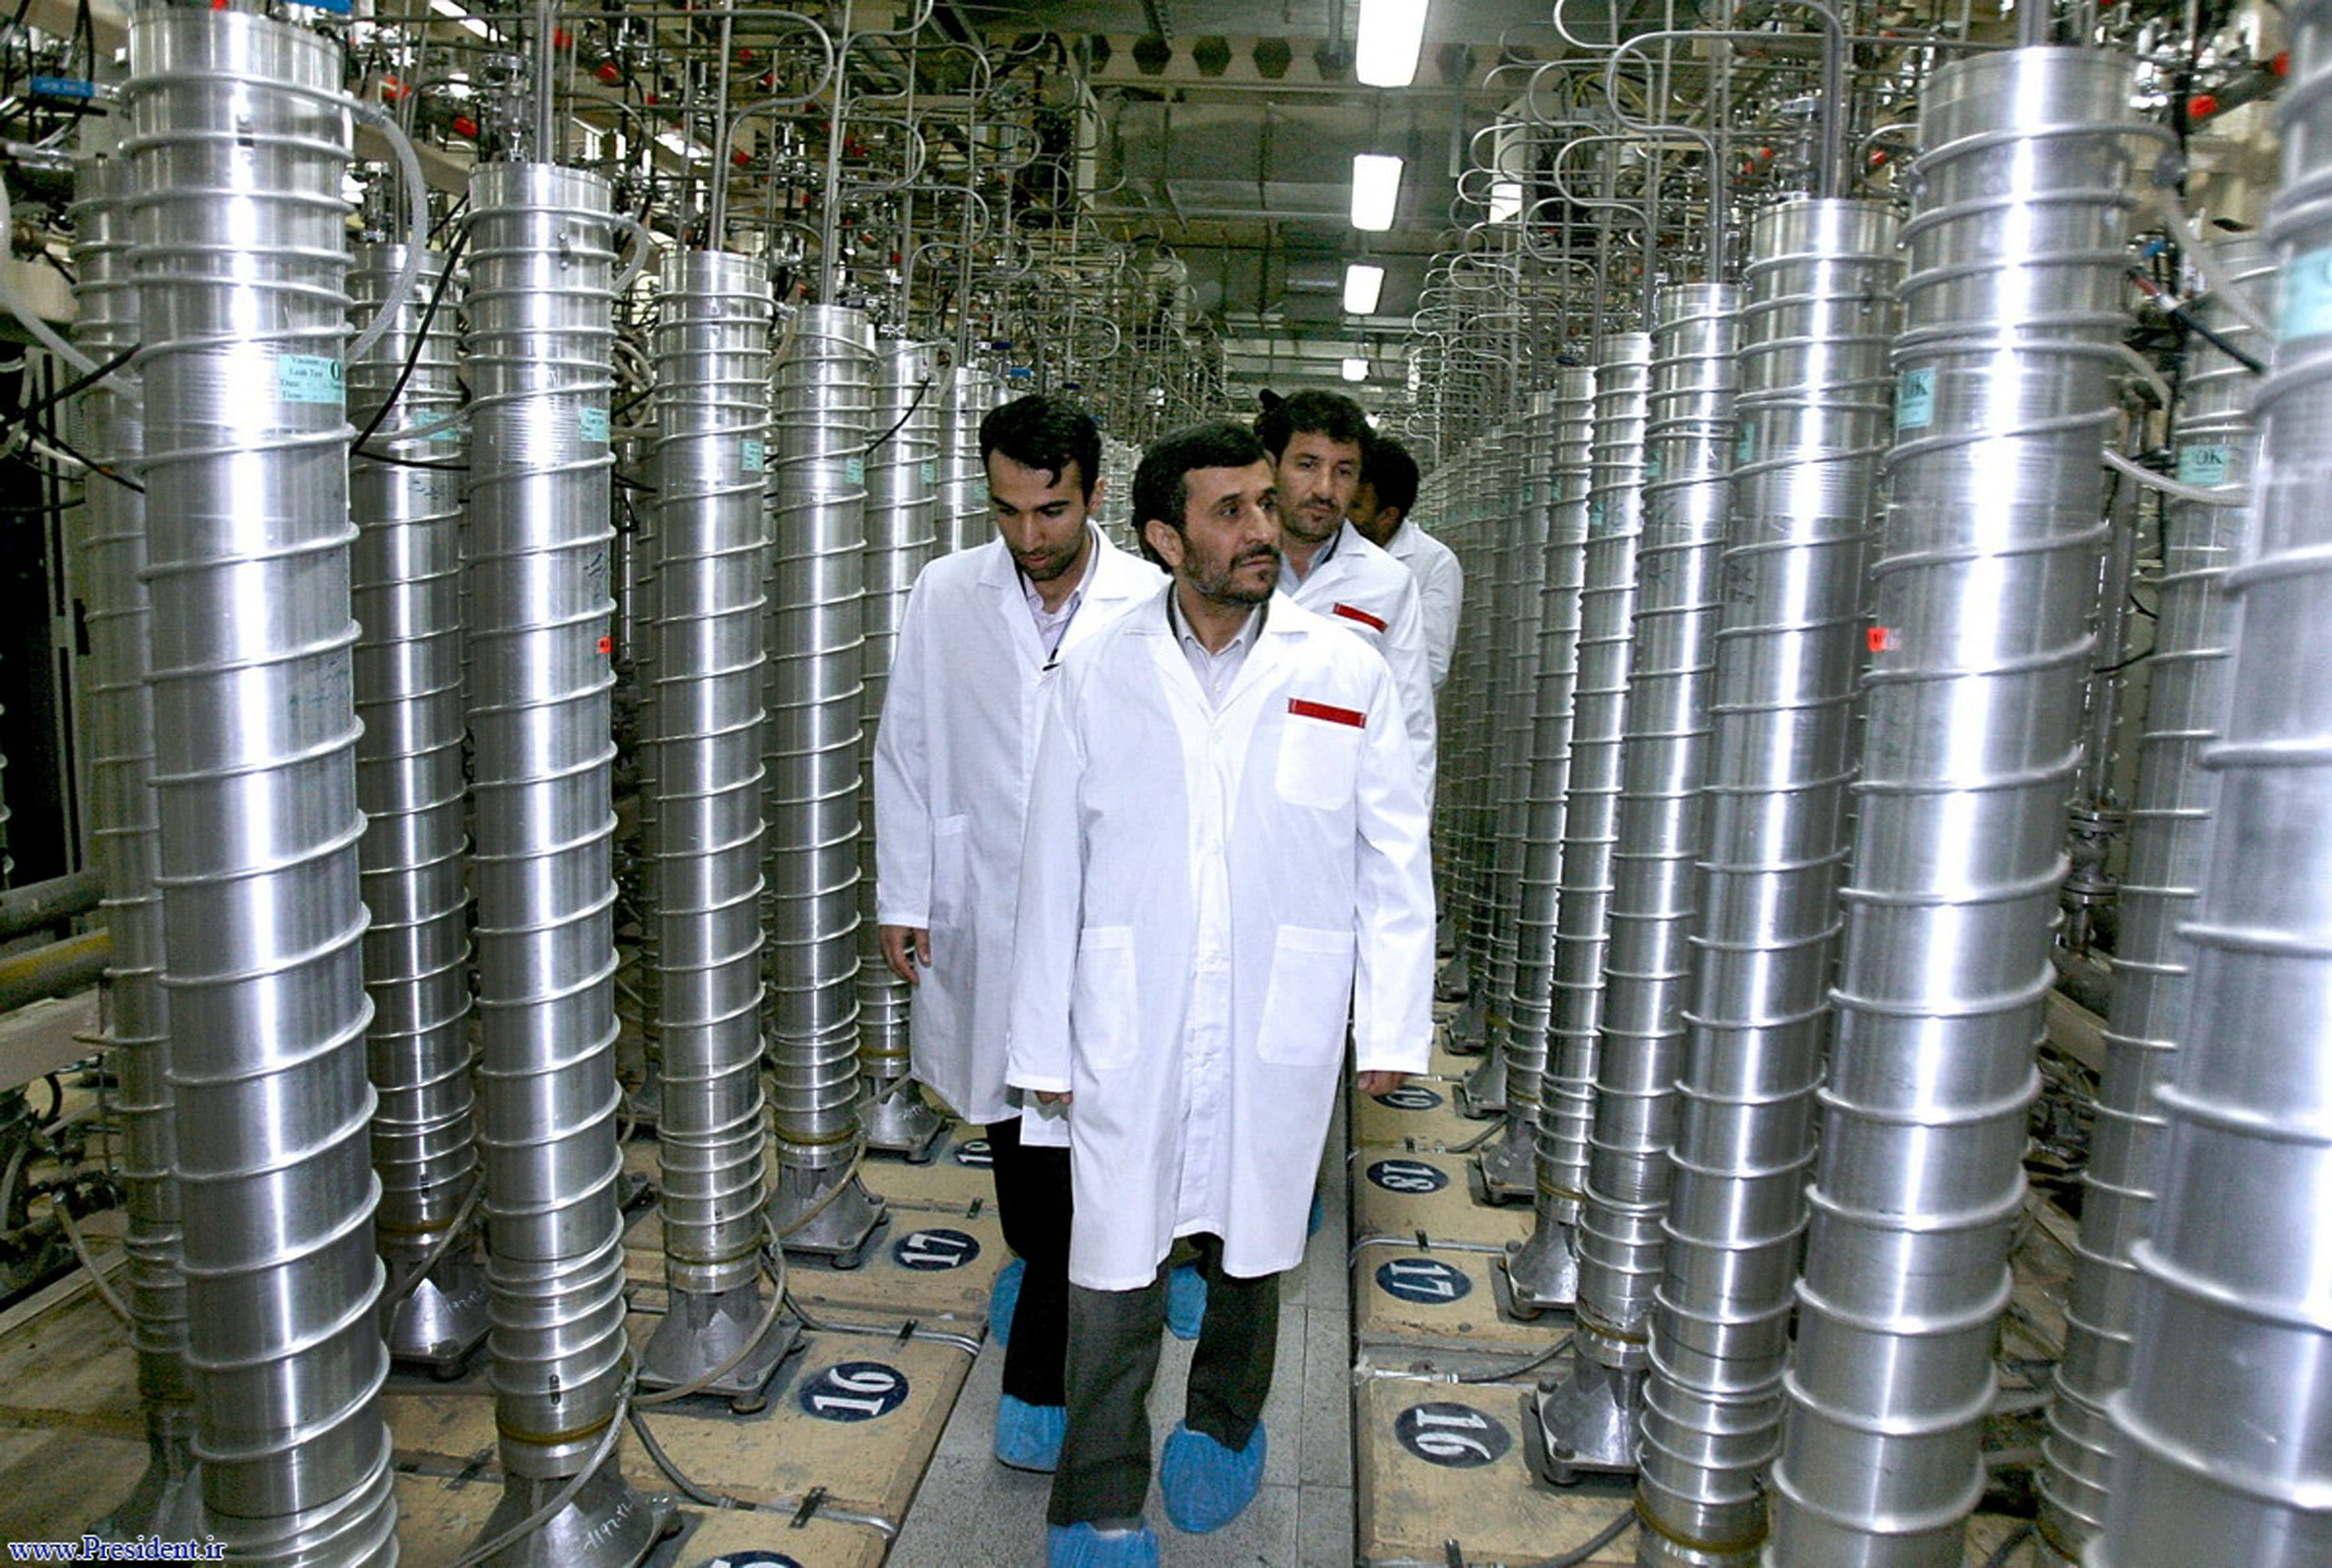 FILE - In this Tuesday, April 8, 2008 file photo released by the Iranian President's Office, Iranian President Mahmoud Ahmadinejad, center, visits the Natanz Uranium Enrichment Facility some 200 miles (322 kilometers) south of the capital Tehran, Iran, which is under International Atomic Energy Agency, IAEA, monitoring. The U.N. nuclear agency is investigating fears from its experts that their cell phones and lap tops have been hacked into by Iranian officials looking for confidential information. Diplomats told The Associated press Wednesday May 18, 2011 that the hardware apparently was tampered with while left unattended during inspection tours in the Islamic Republic.